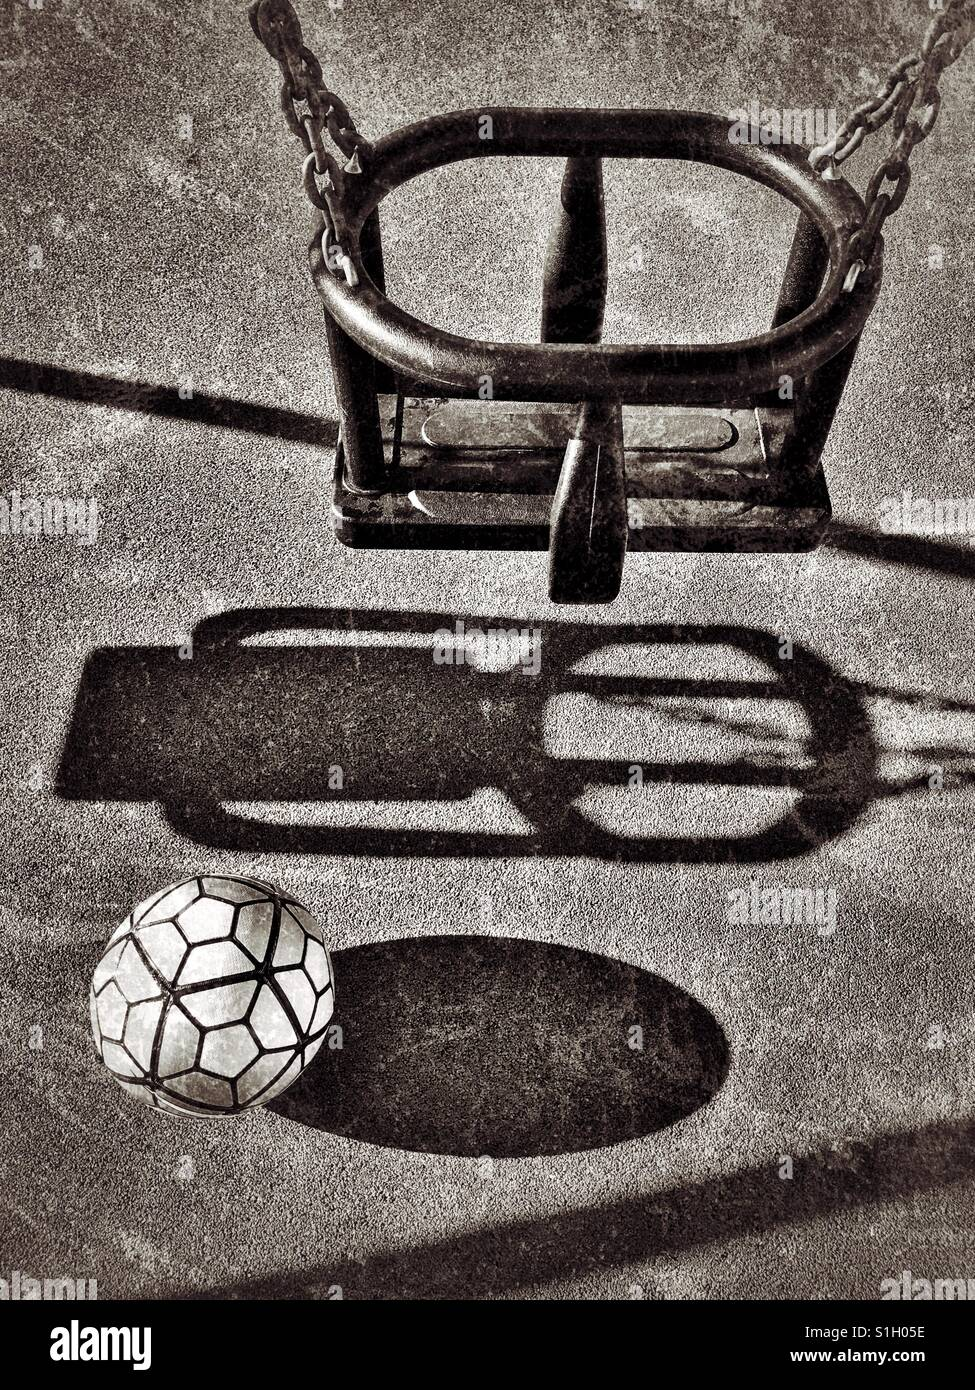 Shadows of a swing and football in a children's playground area. Nobody is present. Where are the children? - Stock Image